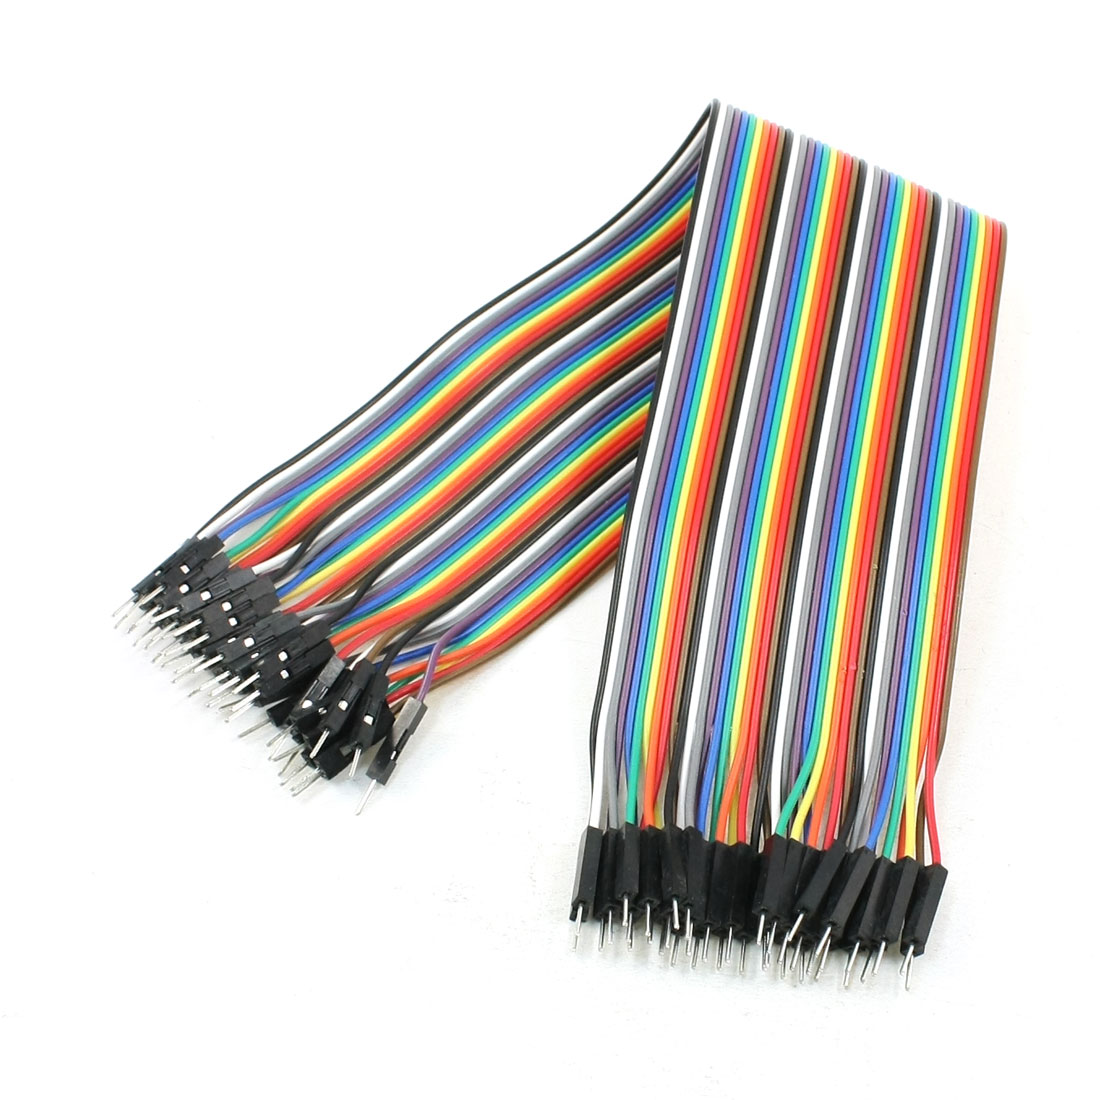 30cm Long 40 Male Pin 1P-1P Wire Jumper Cable Line Connect Colorful